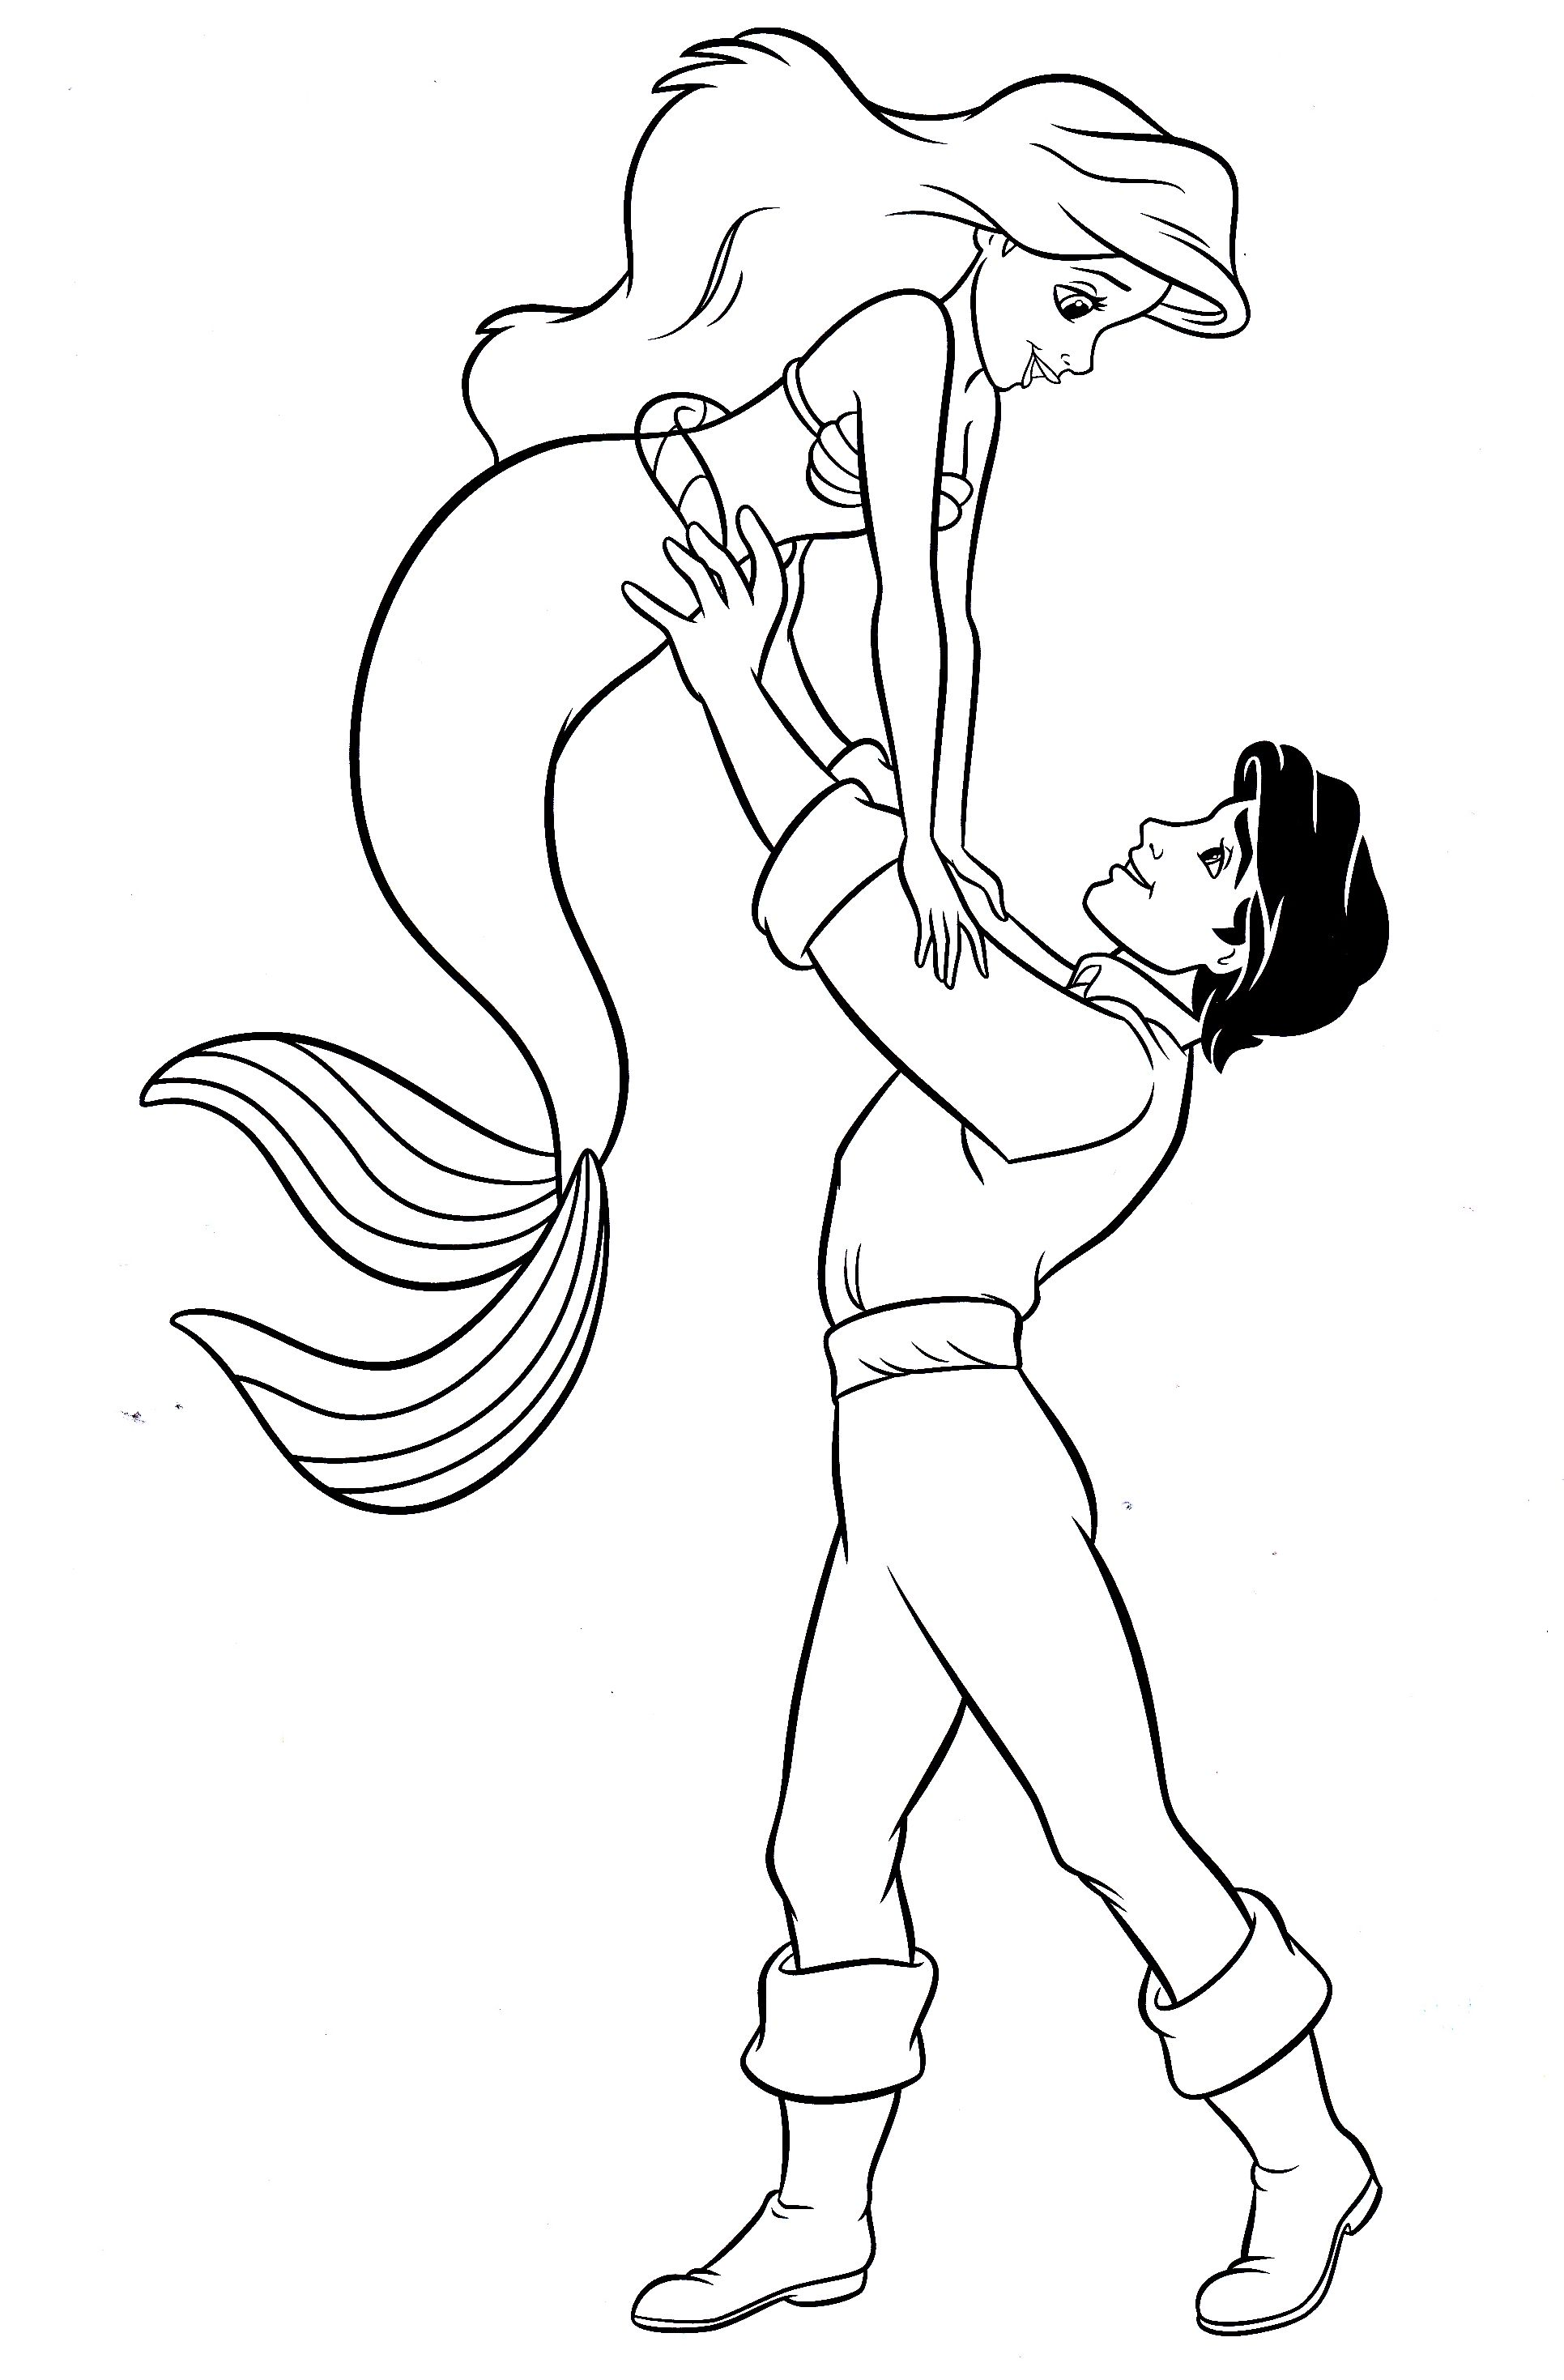 Weihnachten Disney Ausmalbilder : Princess Ariel Prince Eric Coloring Pages Coloring Pages